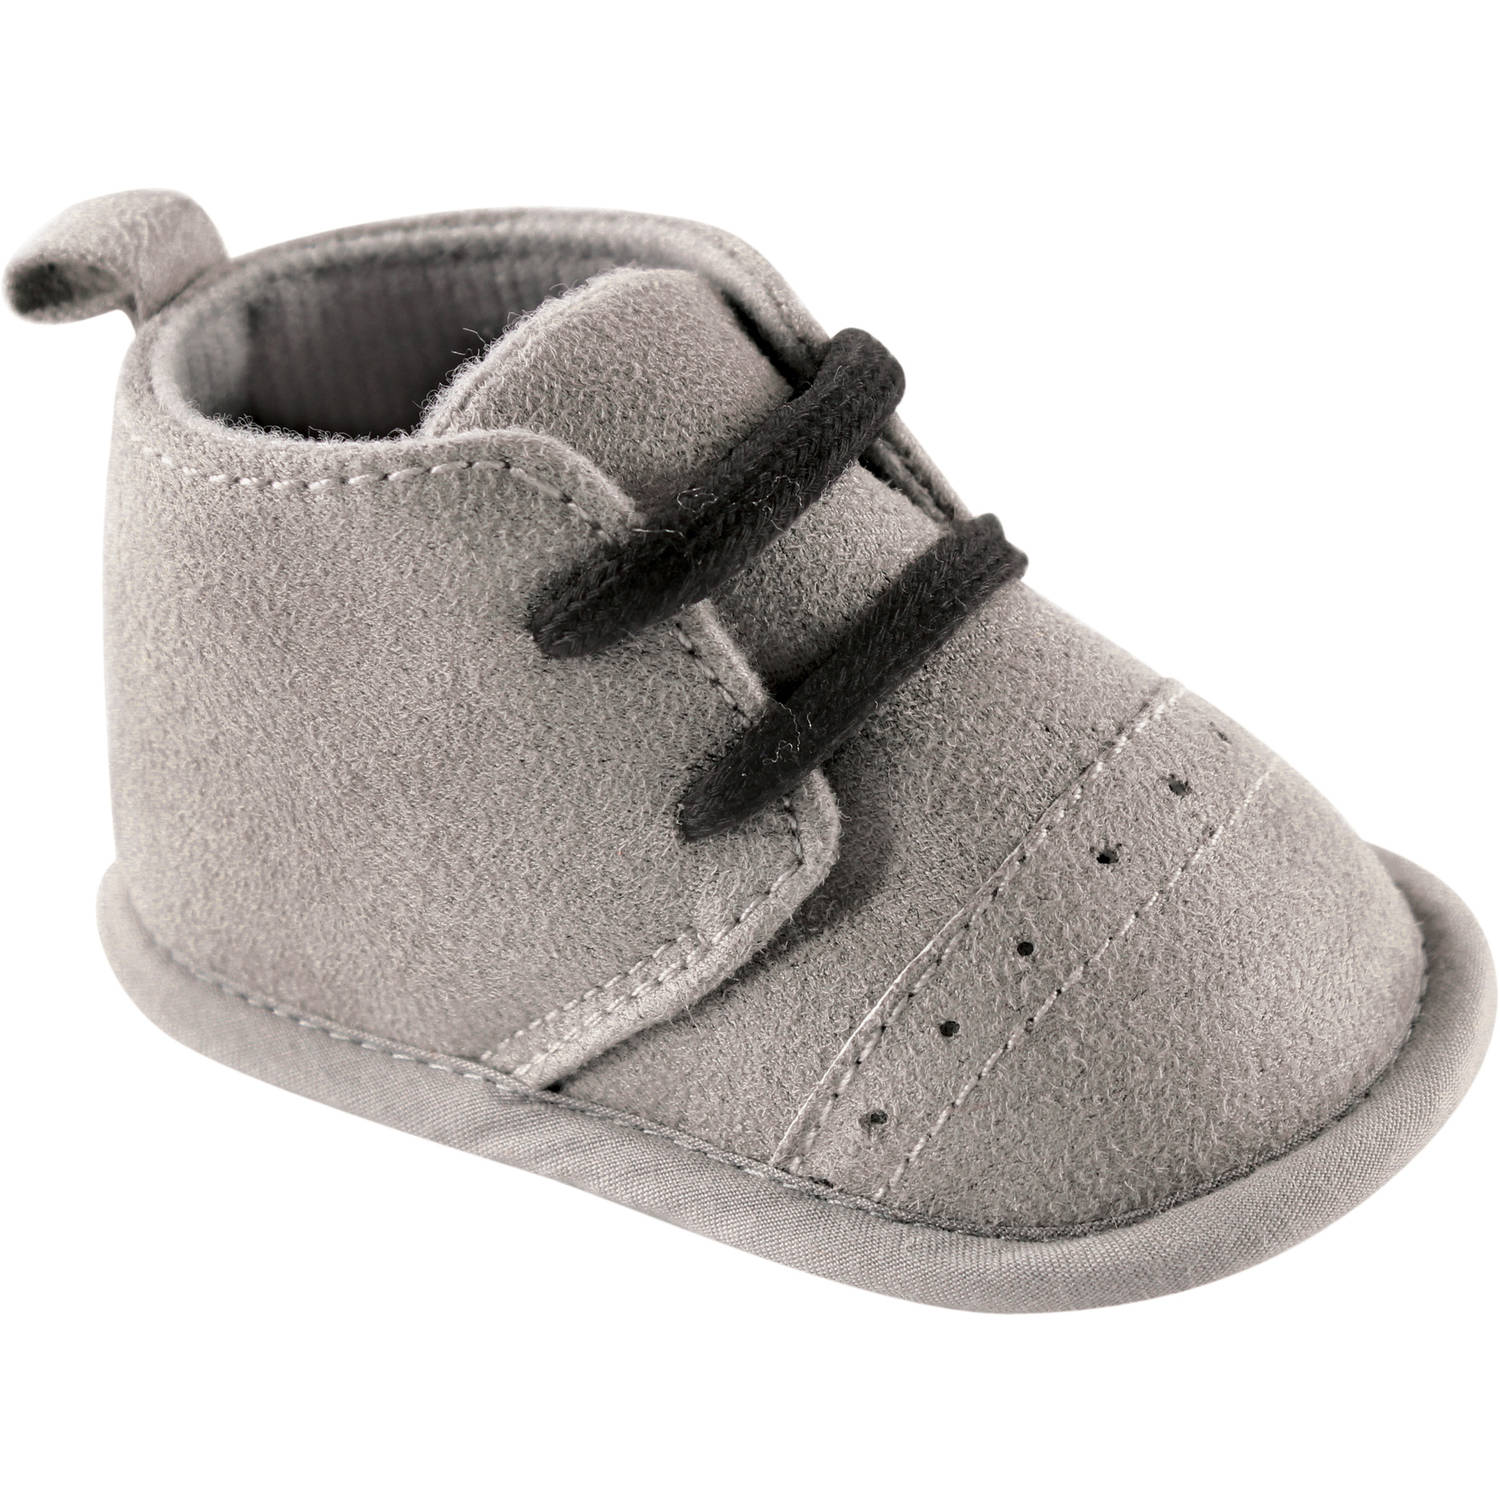 Luvable Friends Newborn Baby Boys Desert Boot